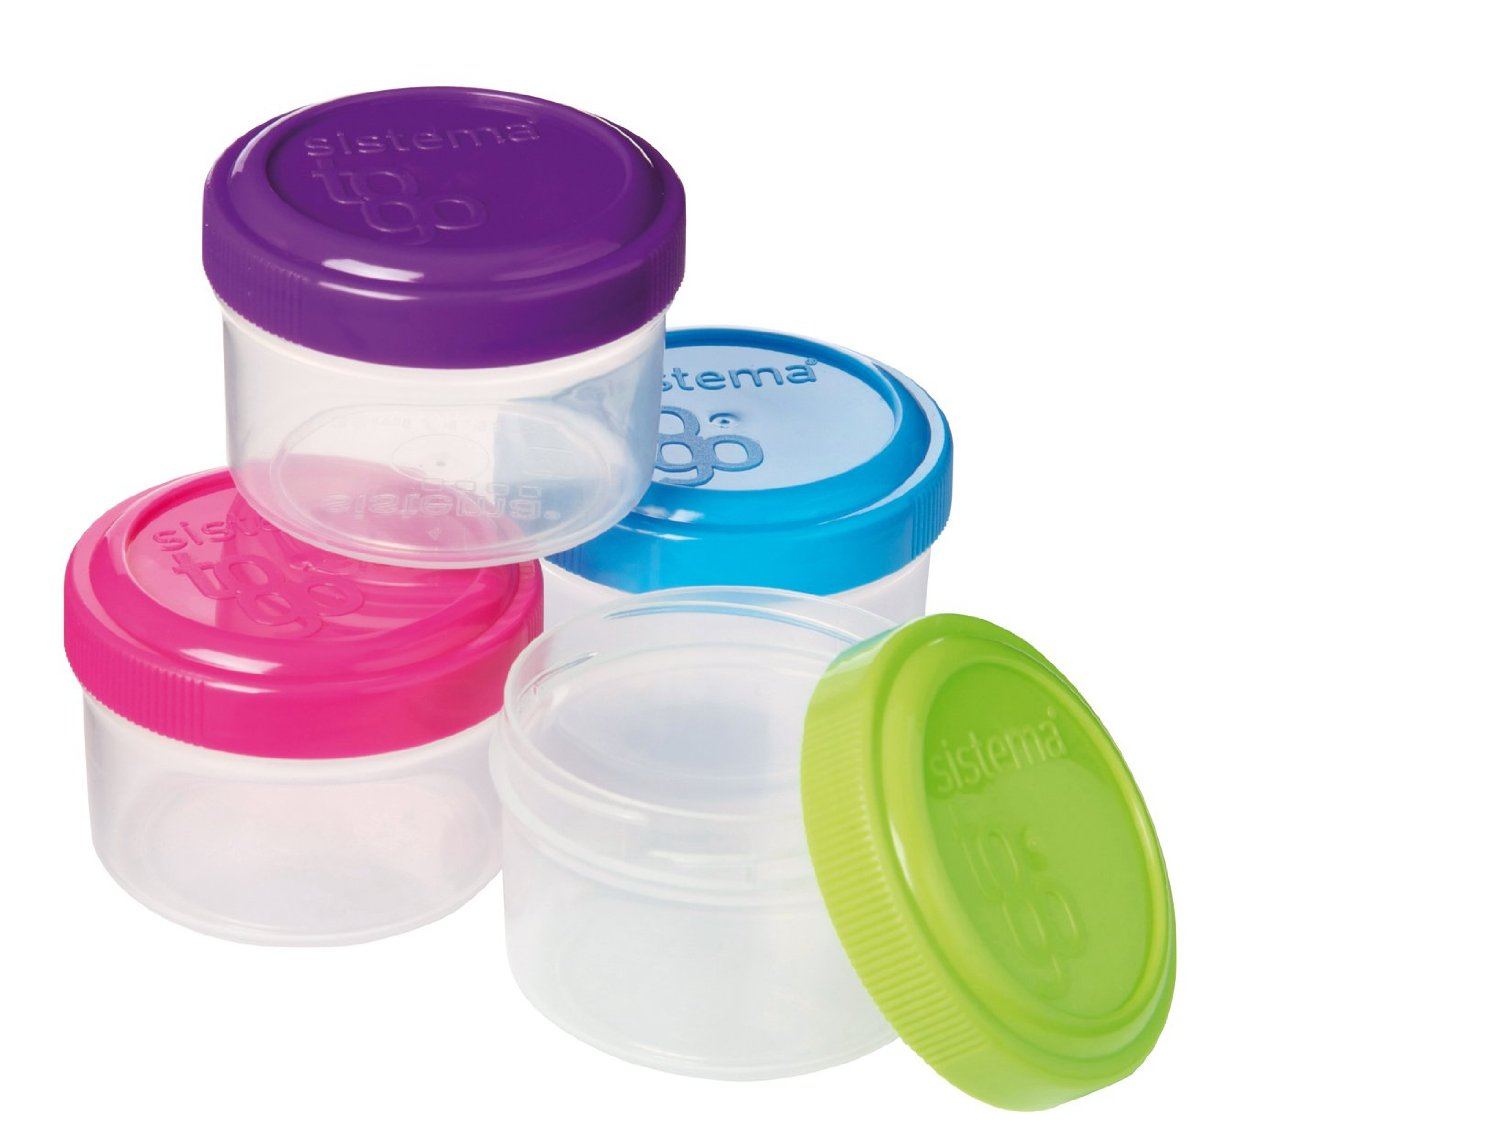 5-sistema-to-go-collection-dressing-food-storage-containers